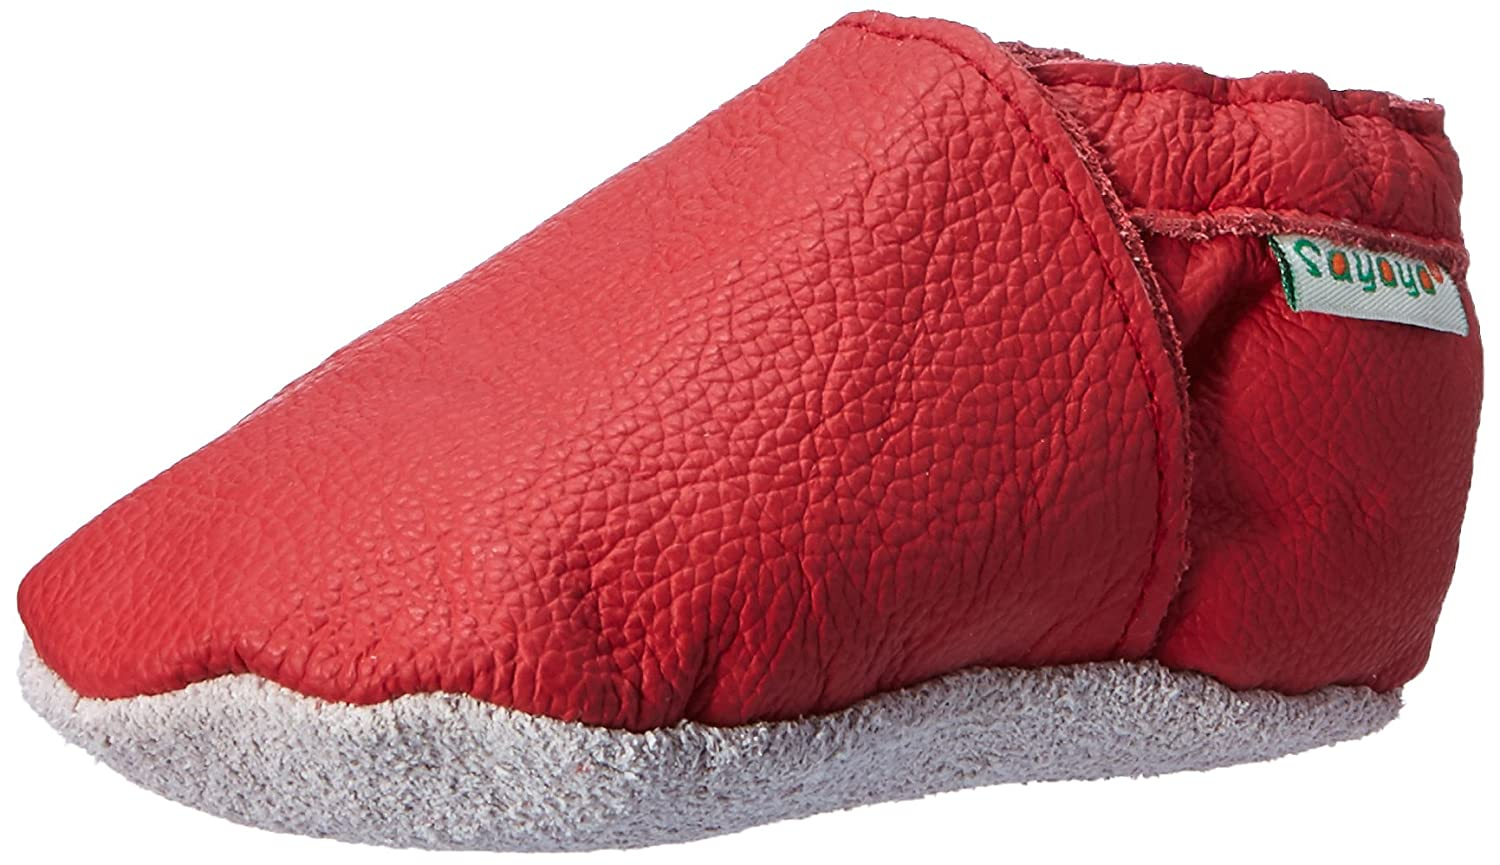 Sayoyo Lowest Best Baby Red Soft Sole Prewalkers Baby Toddler Shoes Cattle Cashmere Shoes